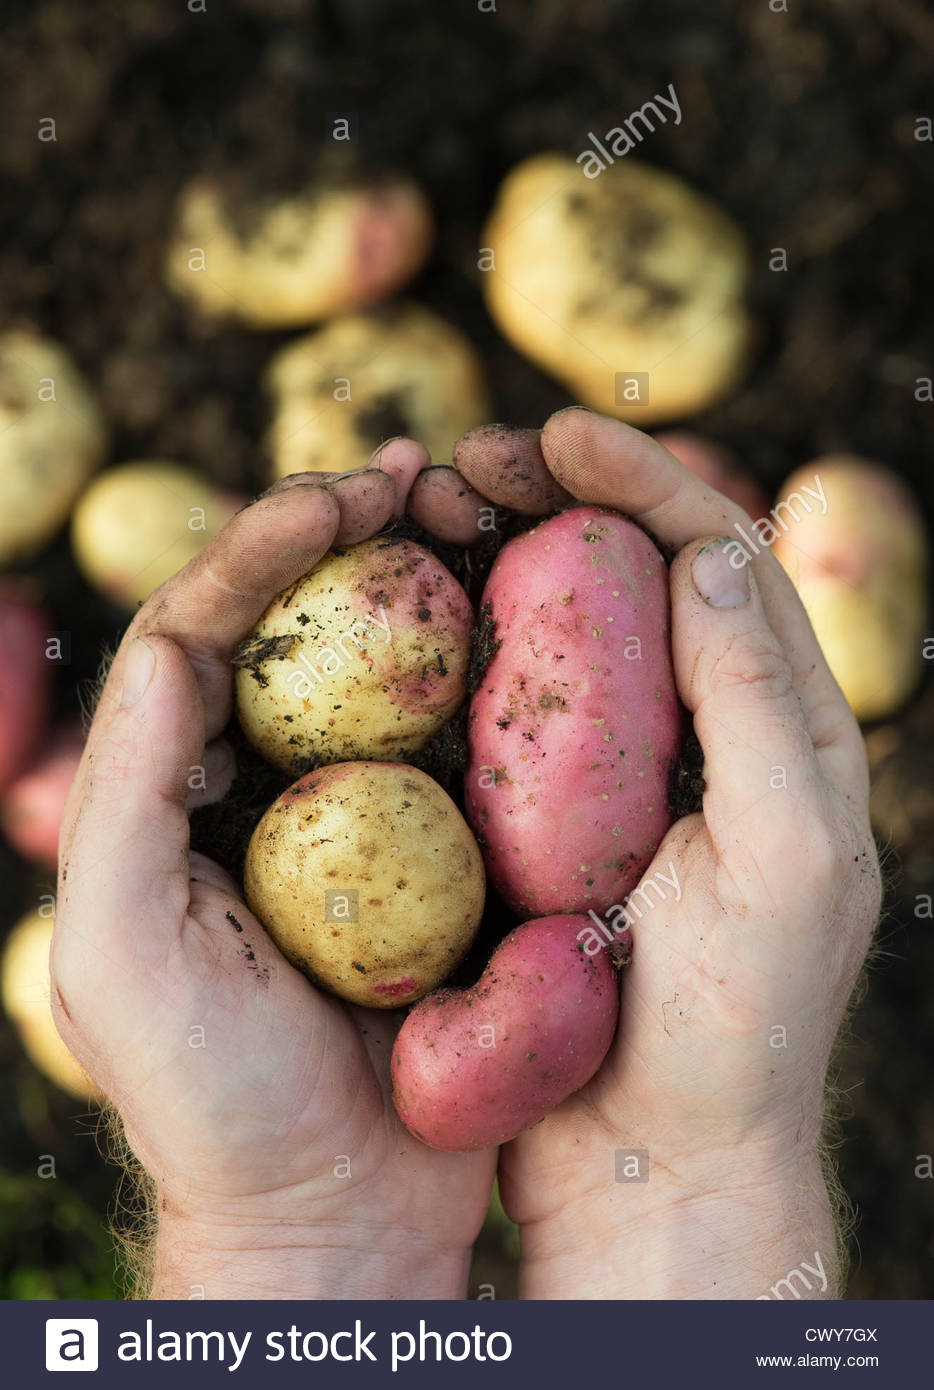 Gardeners hands holding harvested King Edward and Desiree potatoes - Stock Image